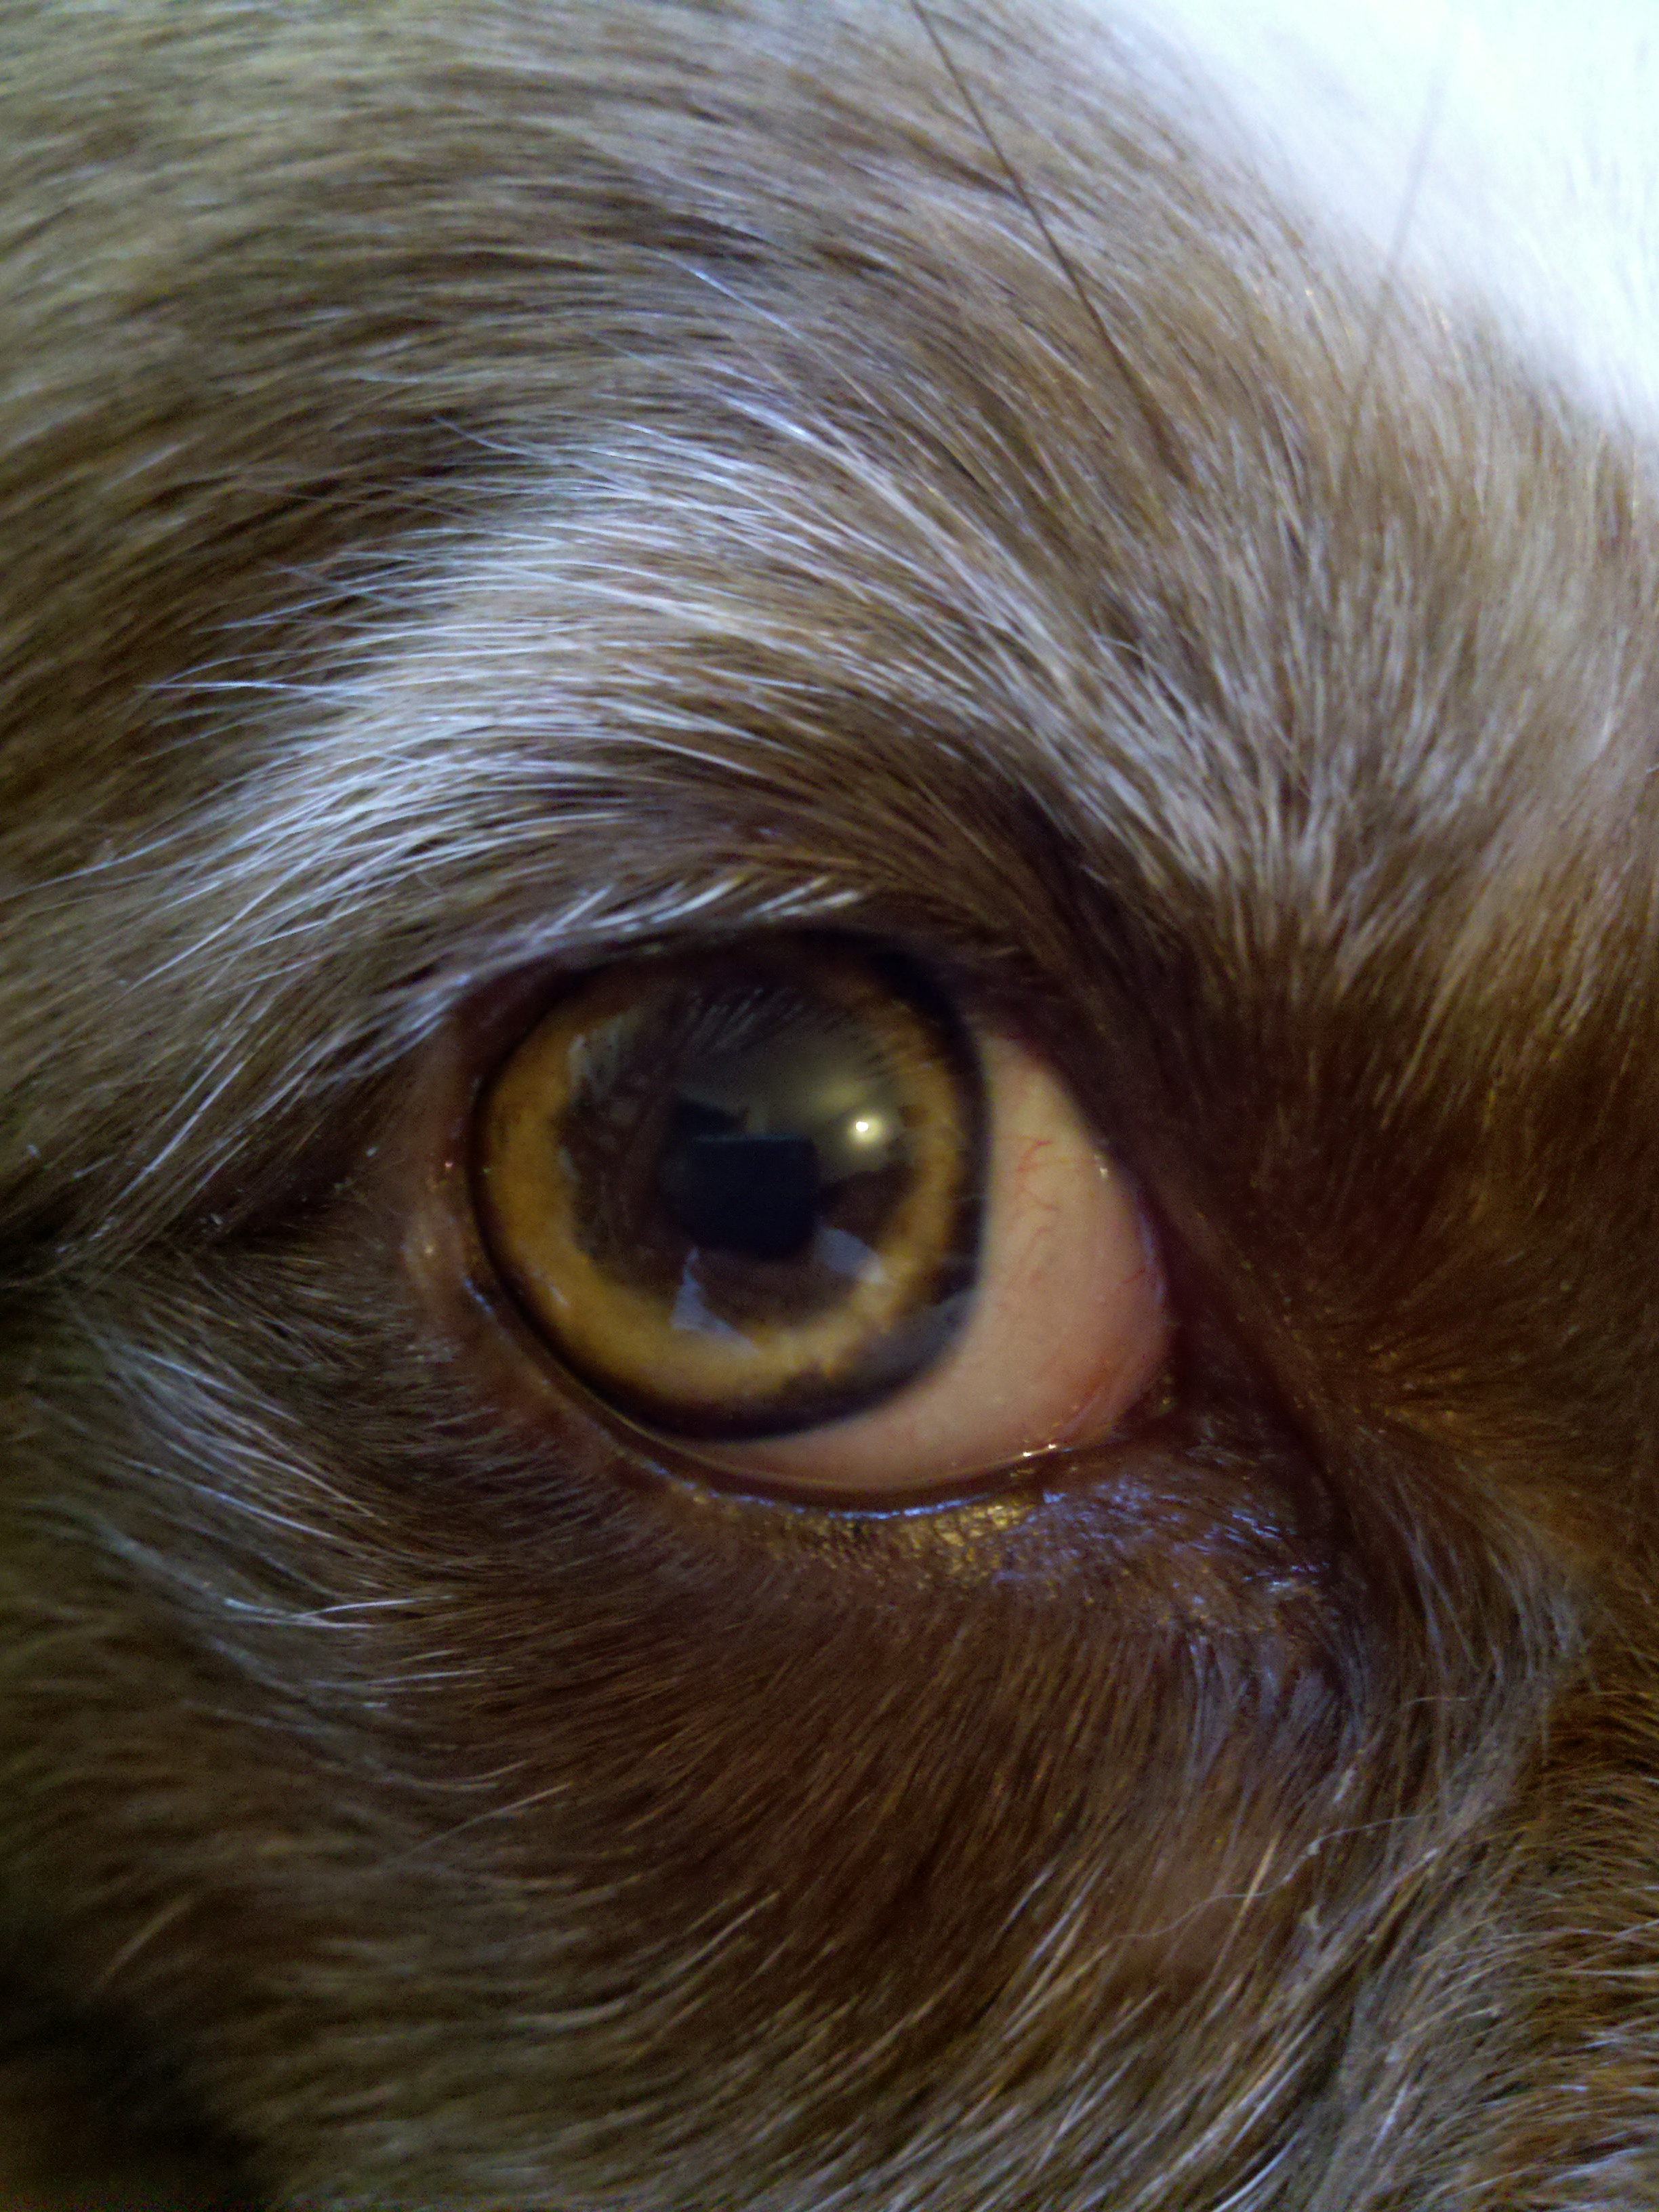 My Dogs Eye Pupil Is Red